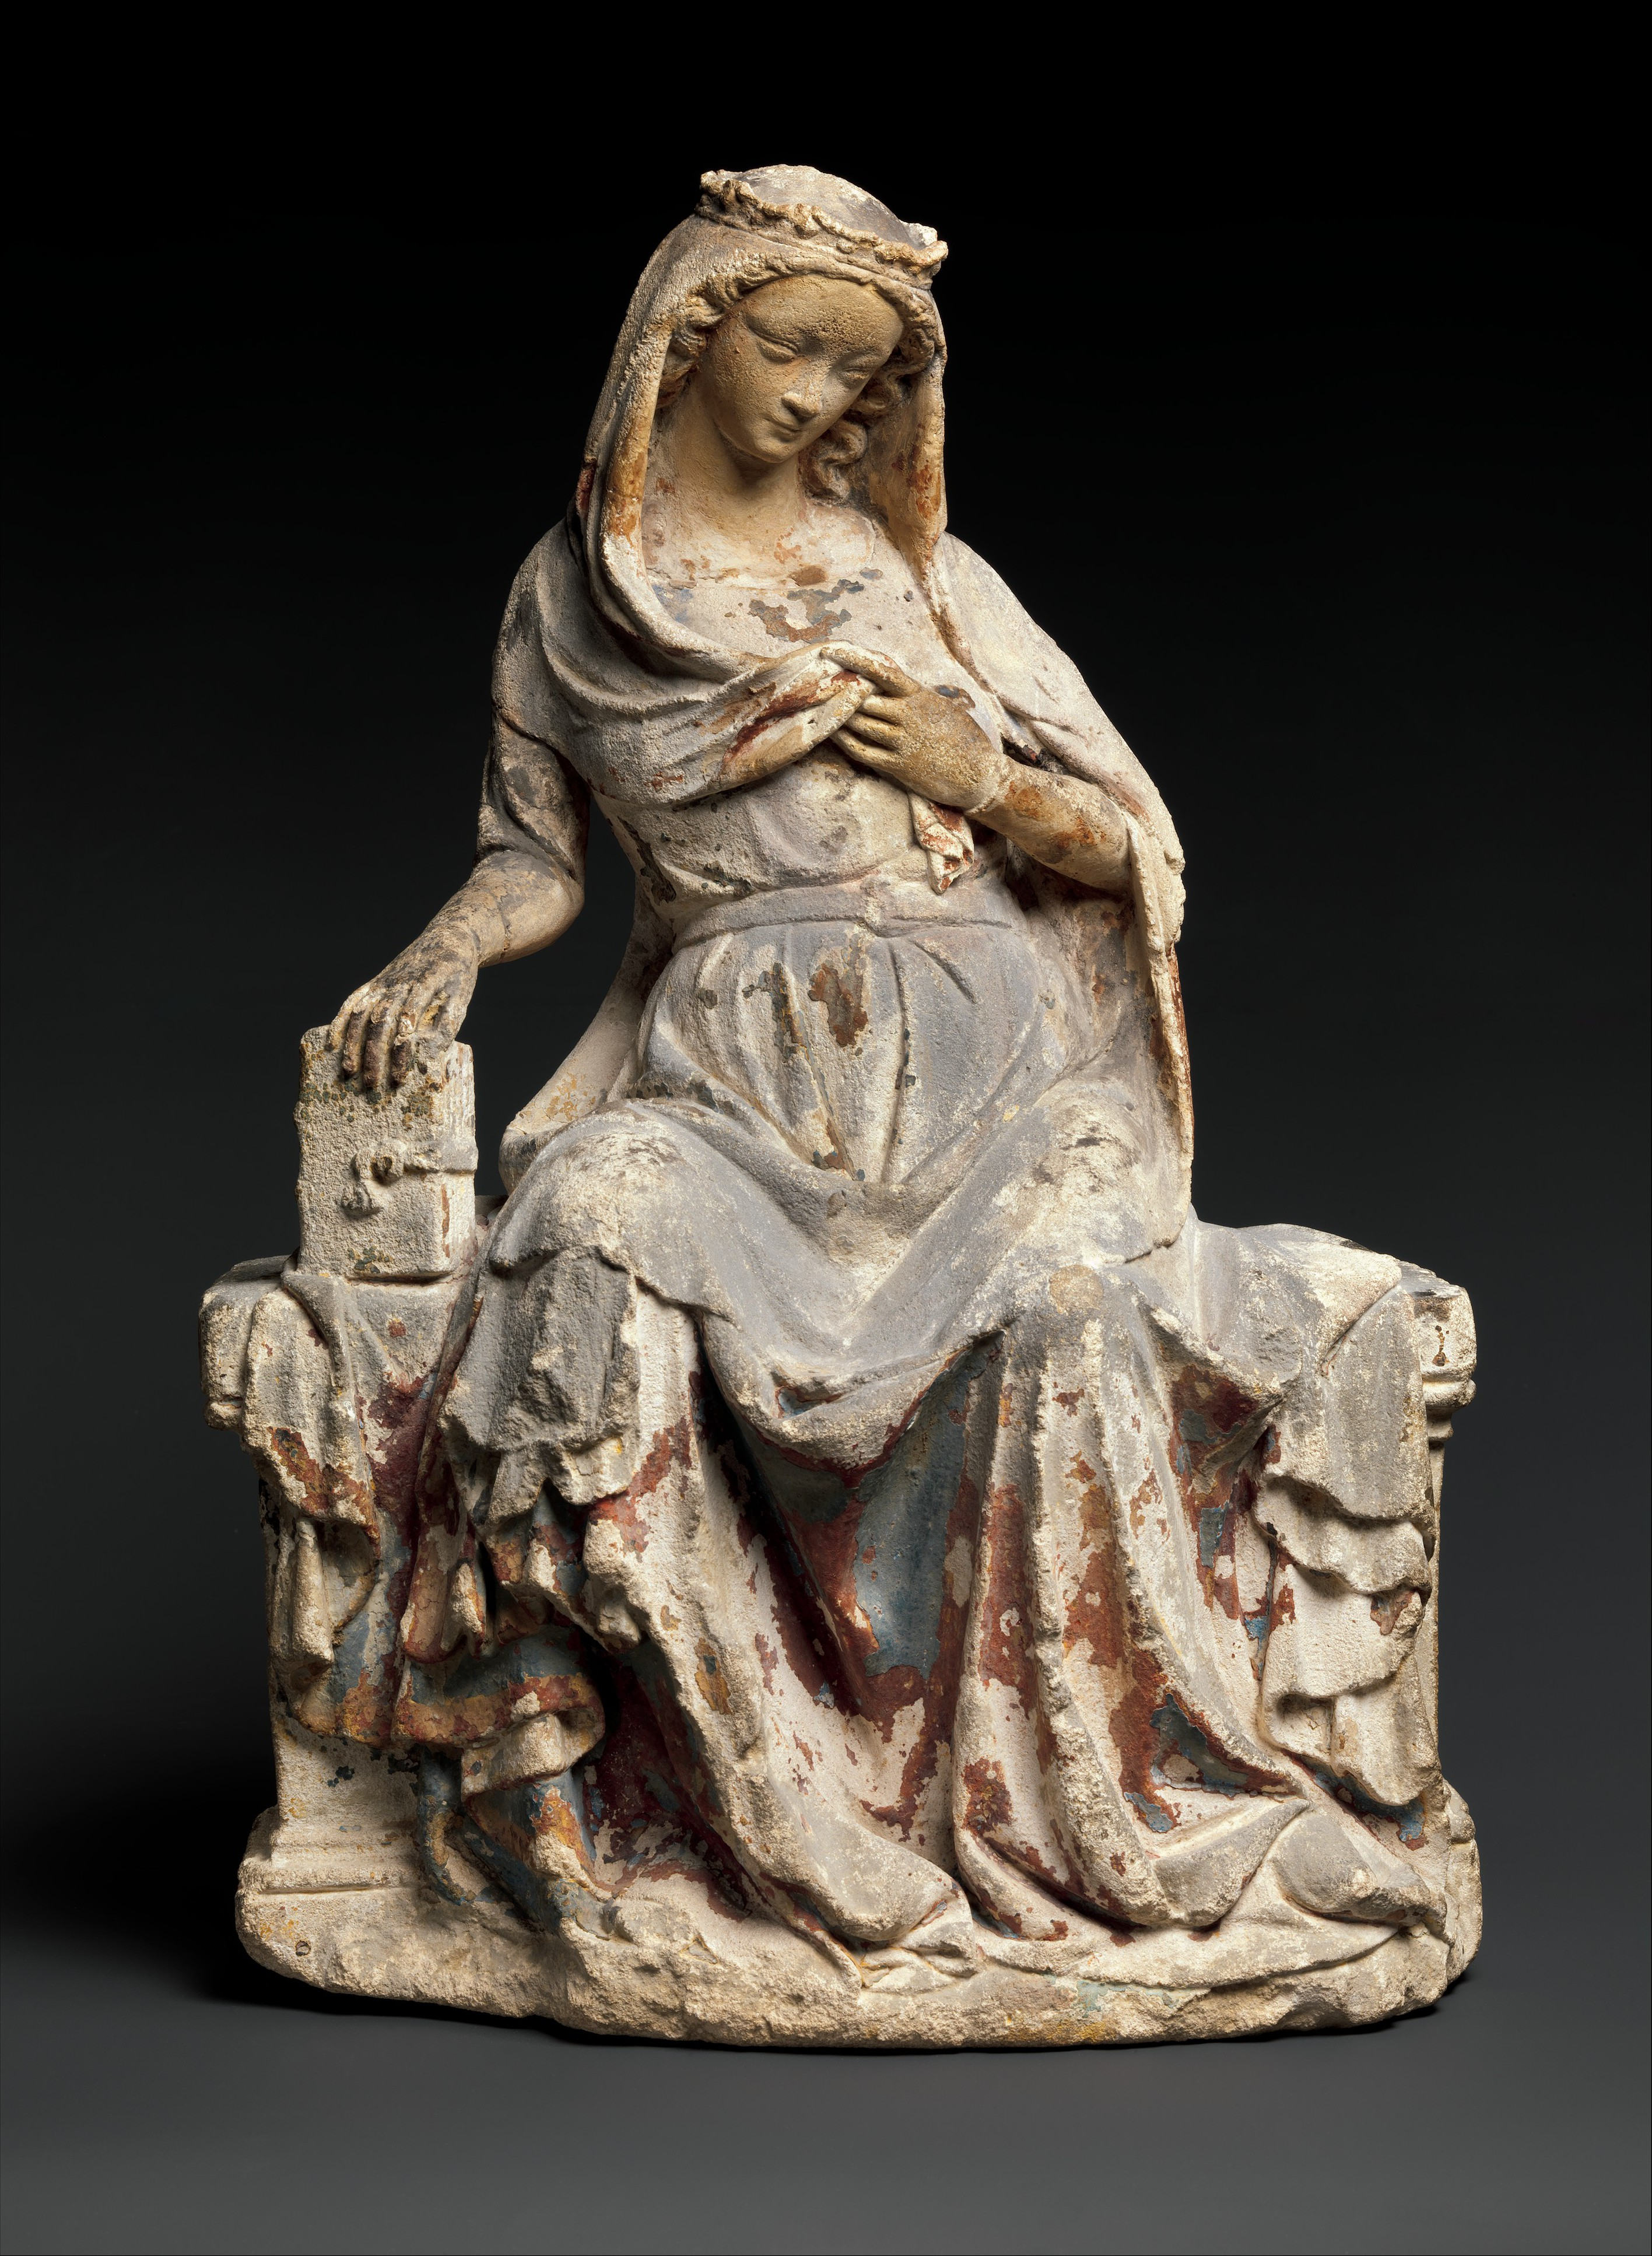 Annonciation_MetMuseum_FrenchSculpture